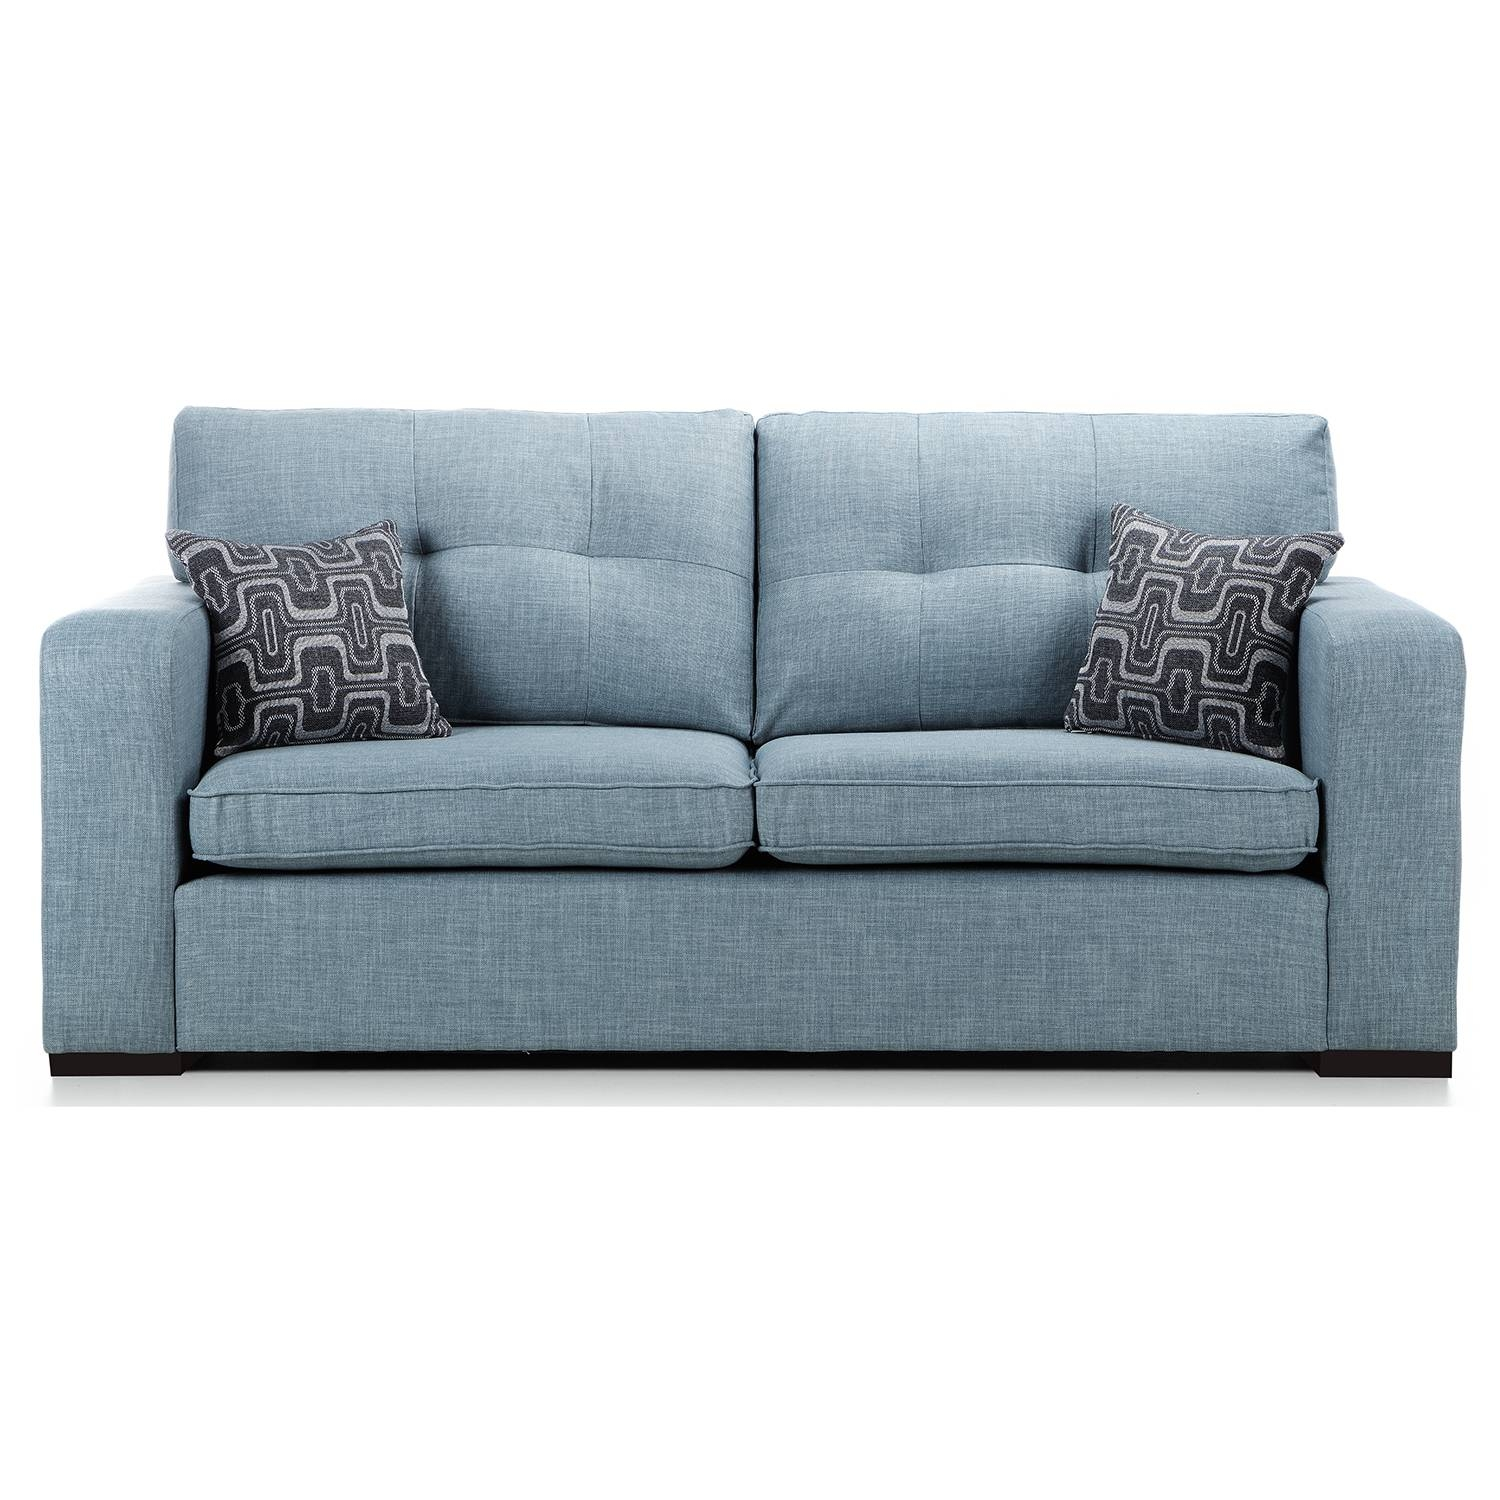 Furniture: Astounding Design Of Sears Sofa Bed For Cozy Home throughout Sears Sofa (Image 1 of 25)